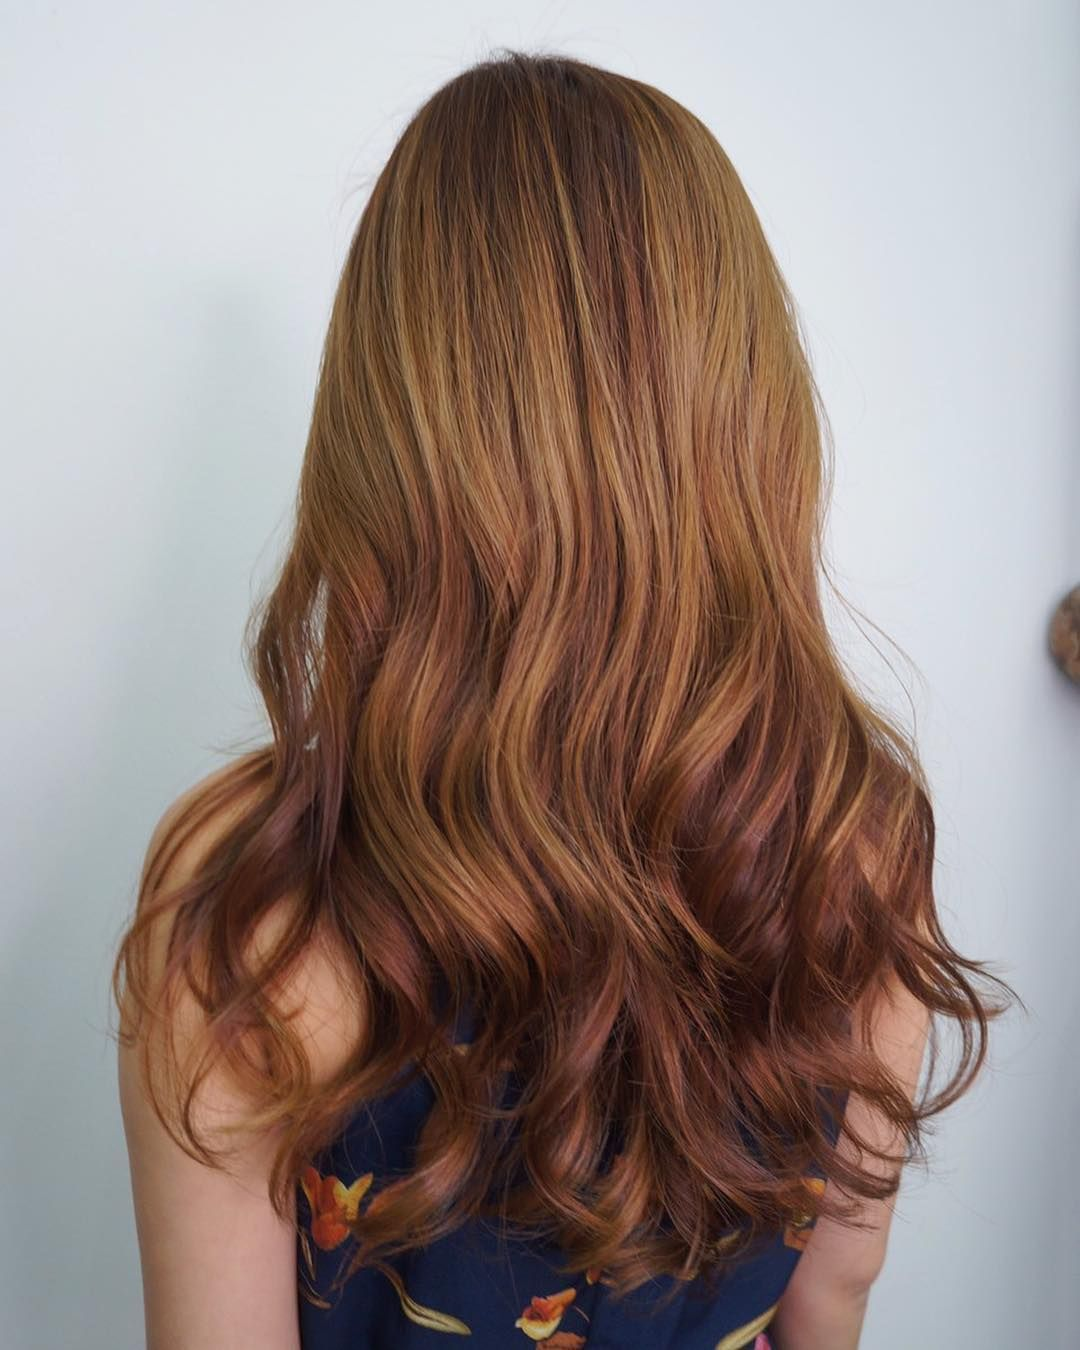 Embrace The Summer Trends With Gorgeous Warm Tones To Accentuate Your Natural Radiance Gol Gorgeous Hair Color Cinnamon Brown Hair Color Japanese Hair Salon